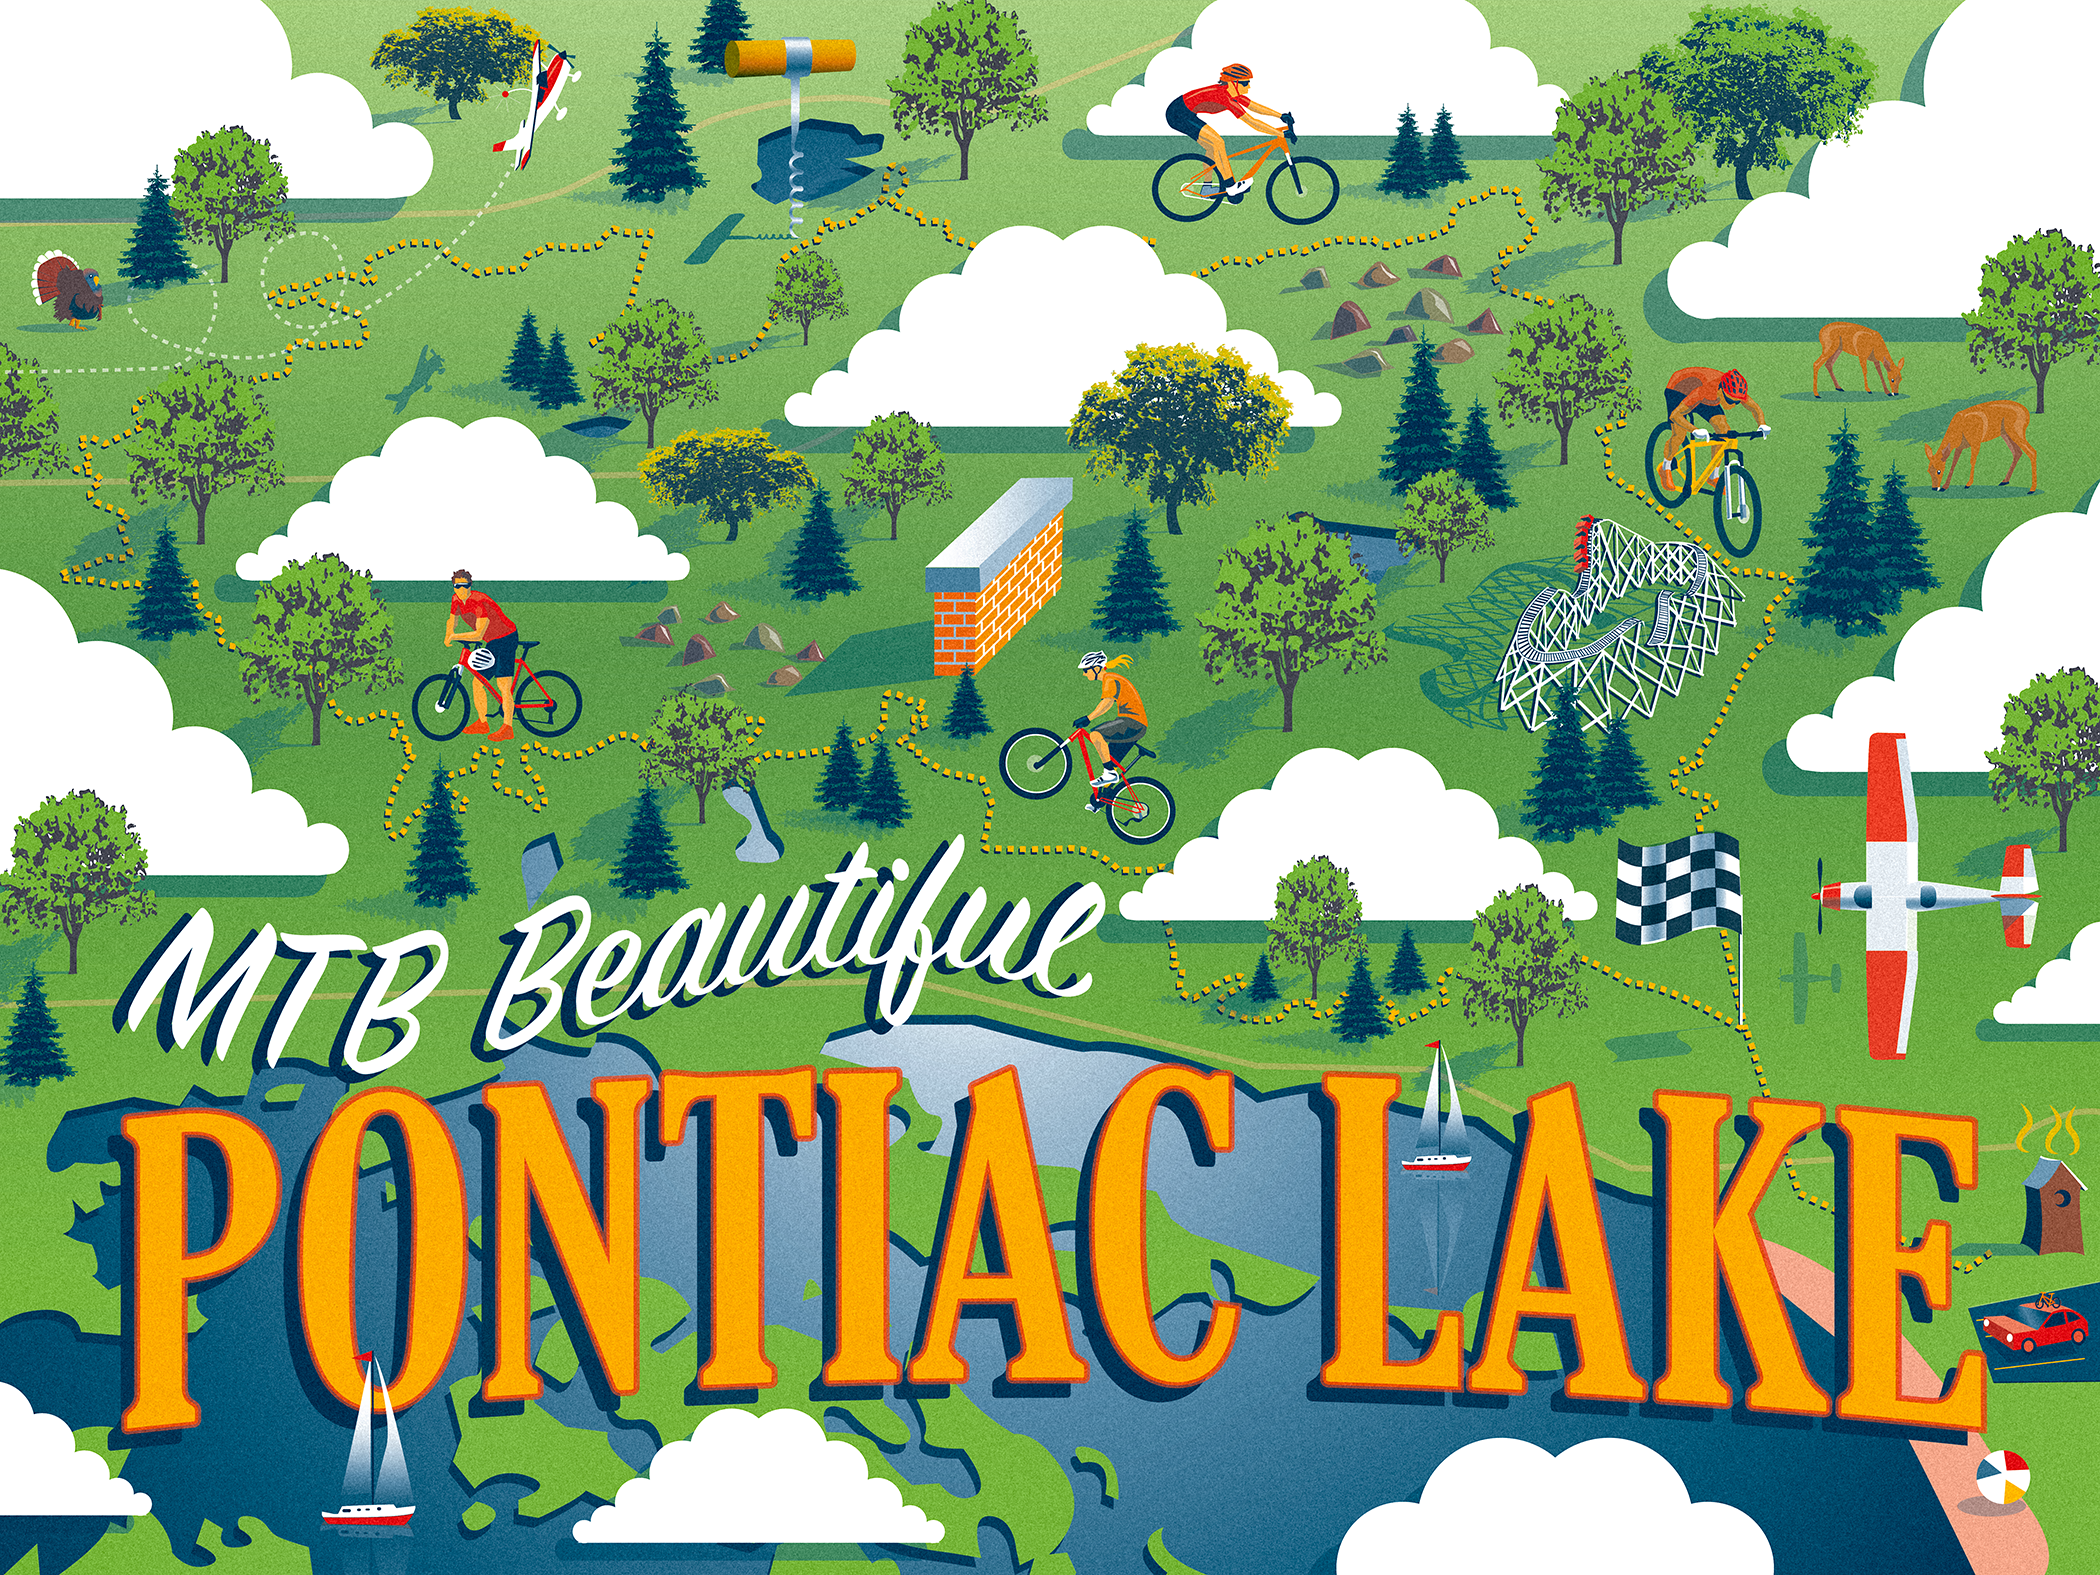 Pontiac Lake Map1_120_trees-03.png